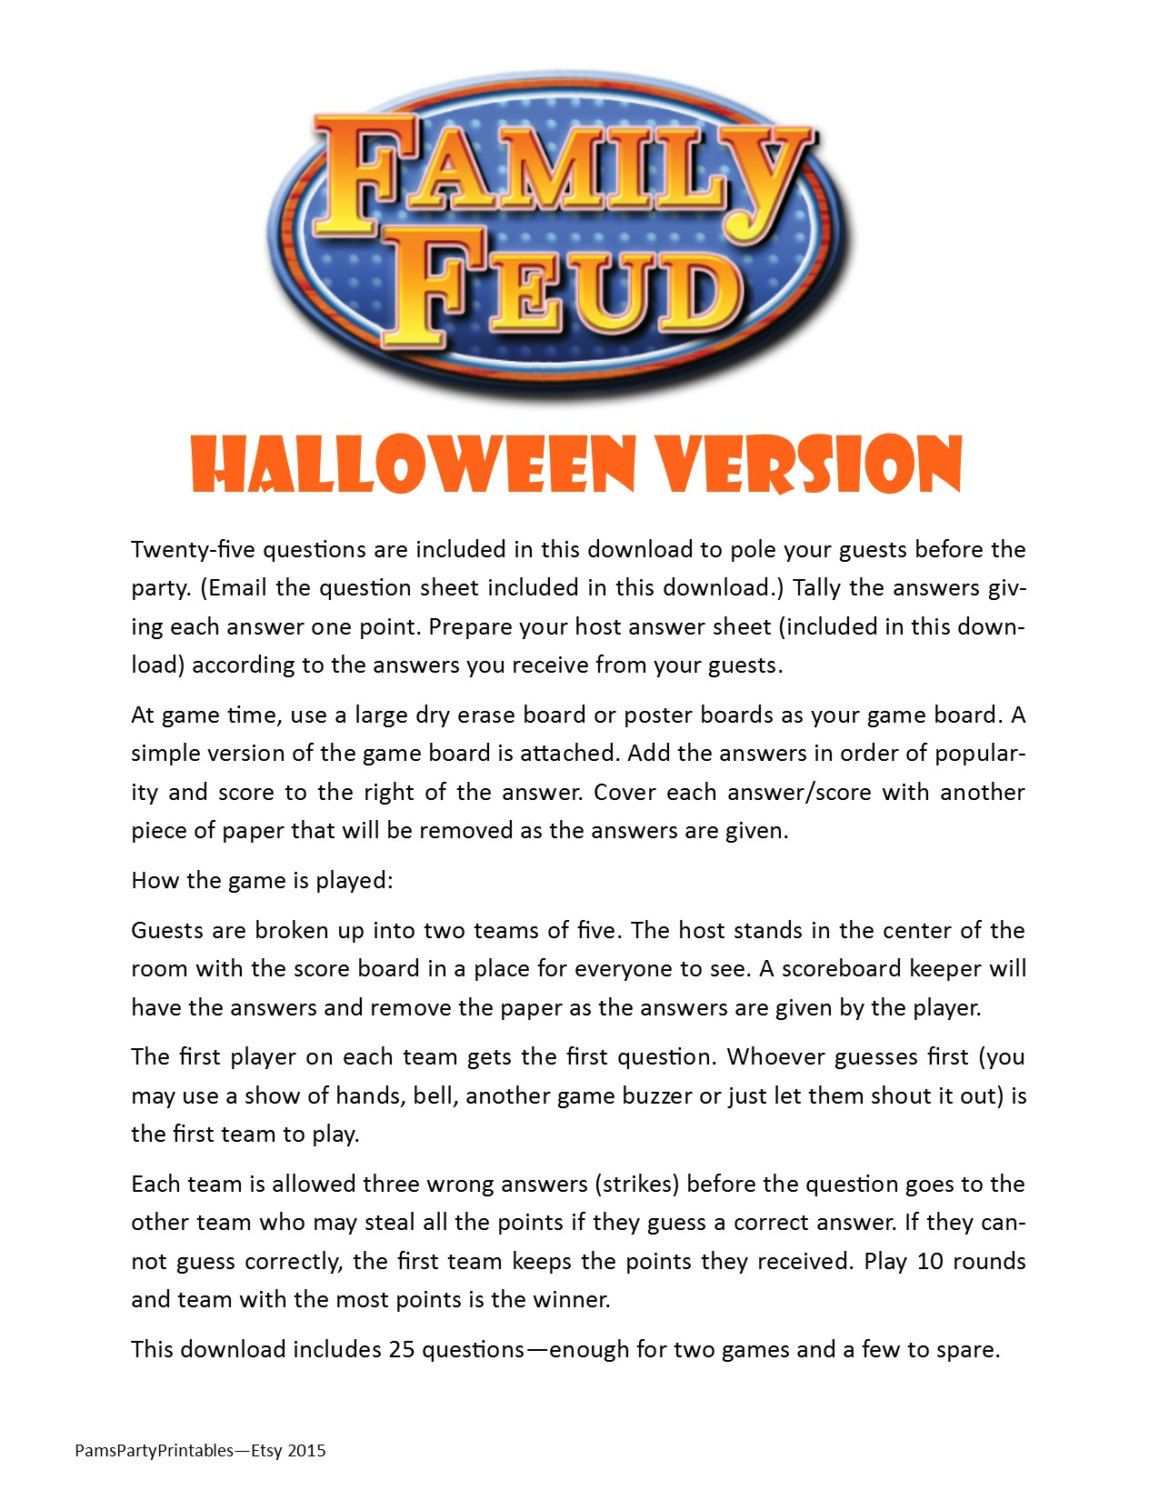 halloween family feud printable game halloween party game instant download by pamspartyprintables on etsy